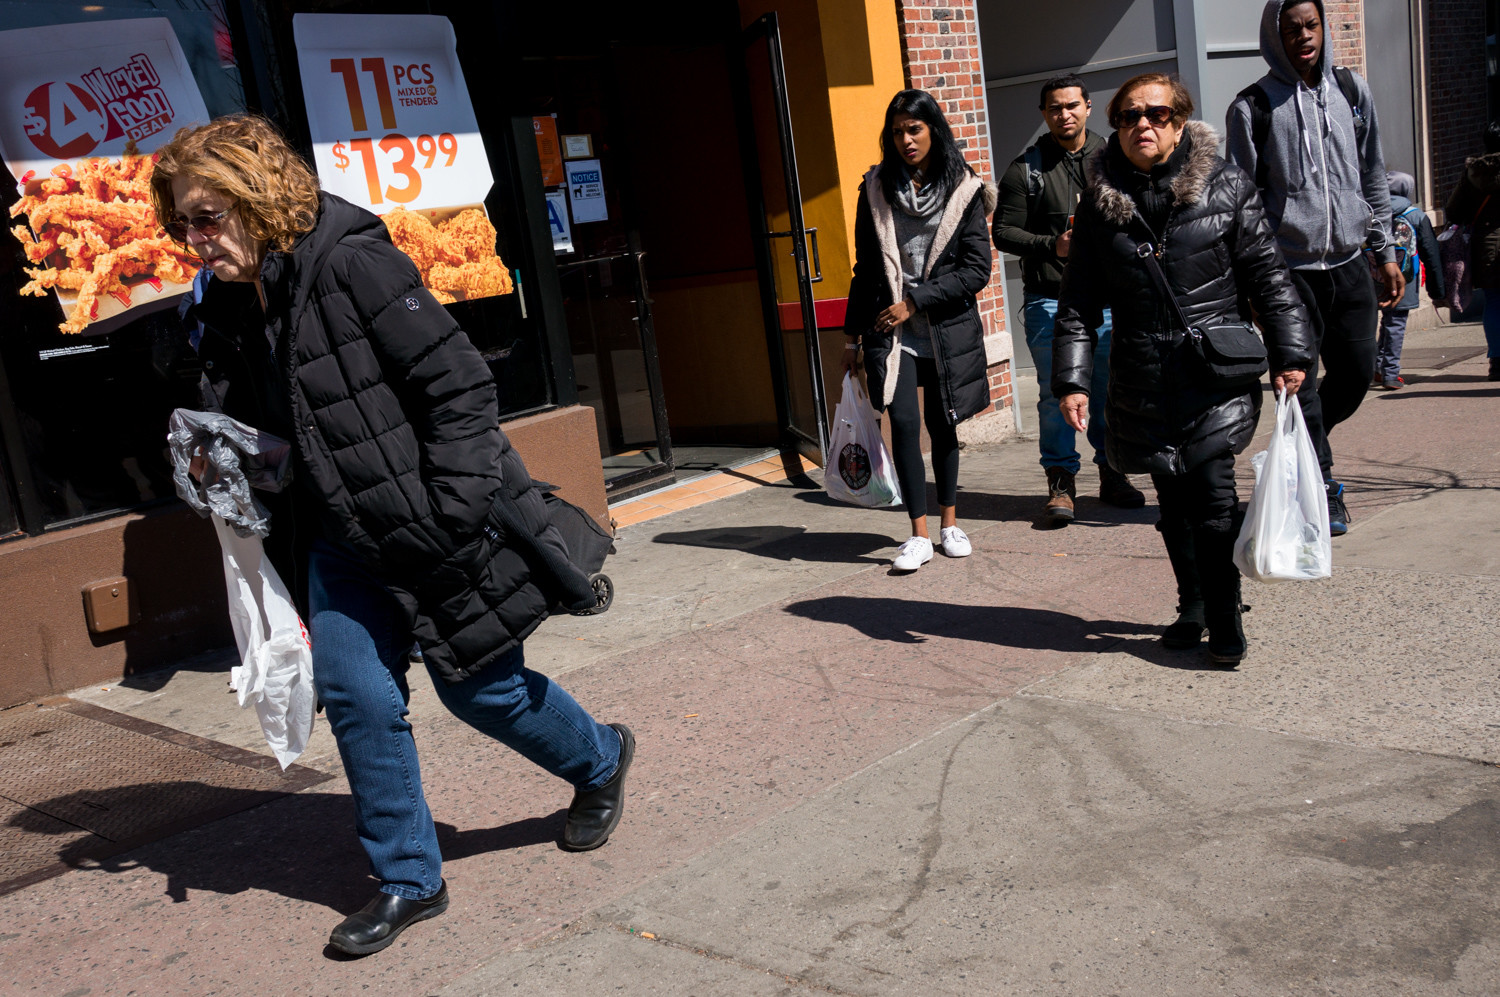 While pedestrians in front of the Popeyes restaurant at West 231st Street in Kingsbridge carry plastic bags from various stores, hundreds of organizations are calling on Gov. Andrew Cuomo to address what they're calling a 'plastic bag crisis,' urging him to ban the thin plastic bags commonly found at supermarkets and bodegas.